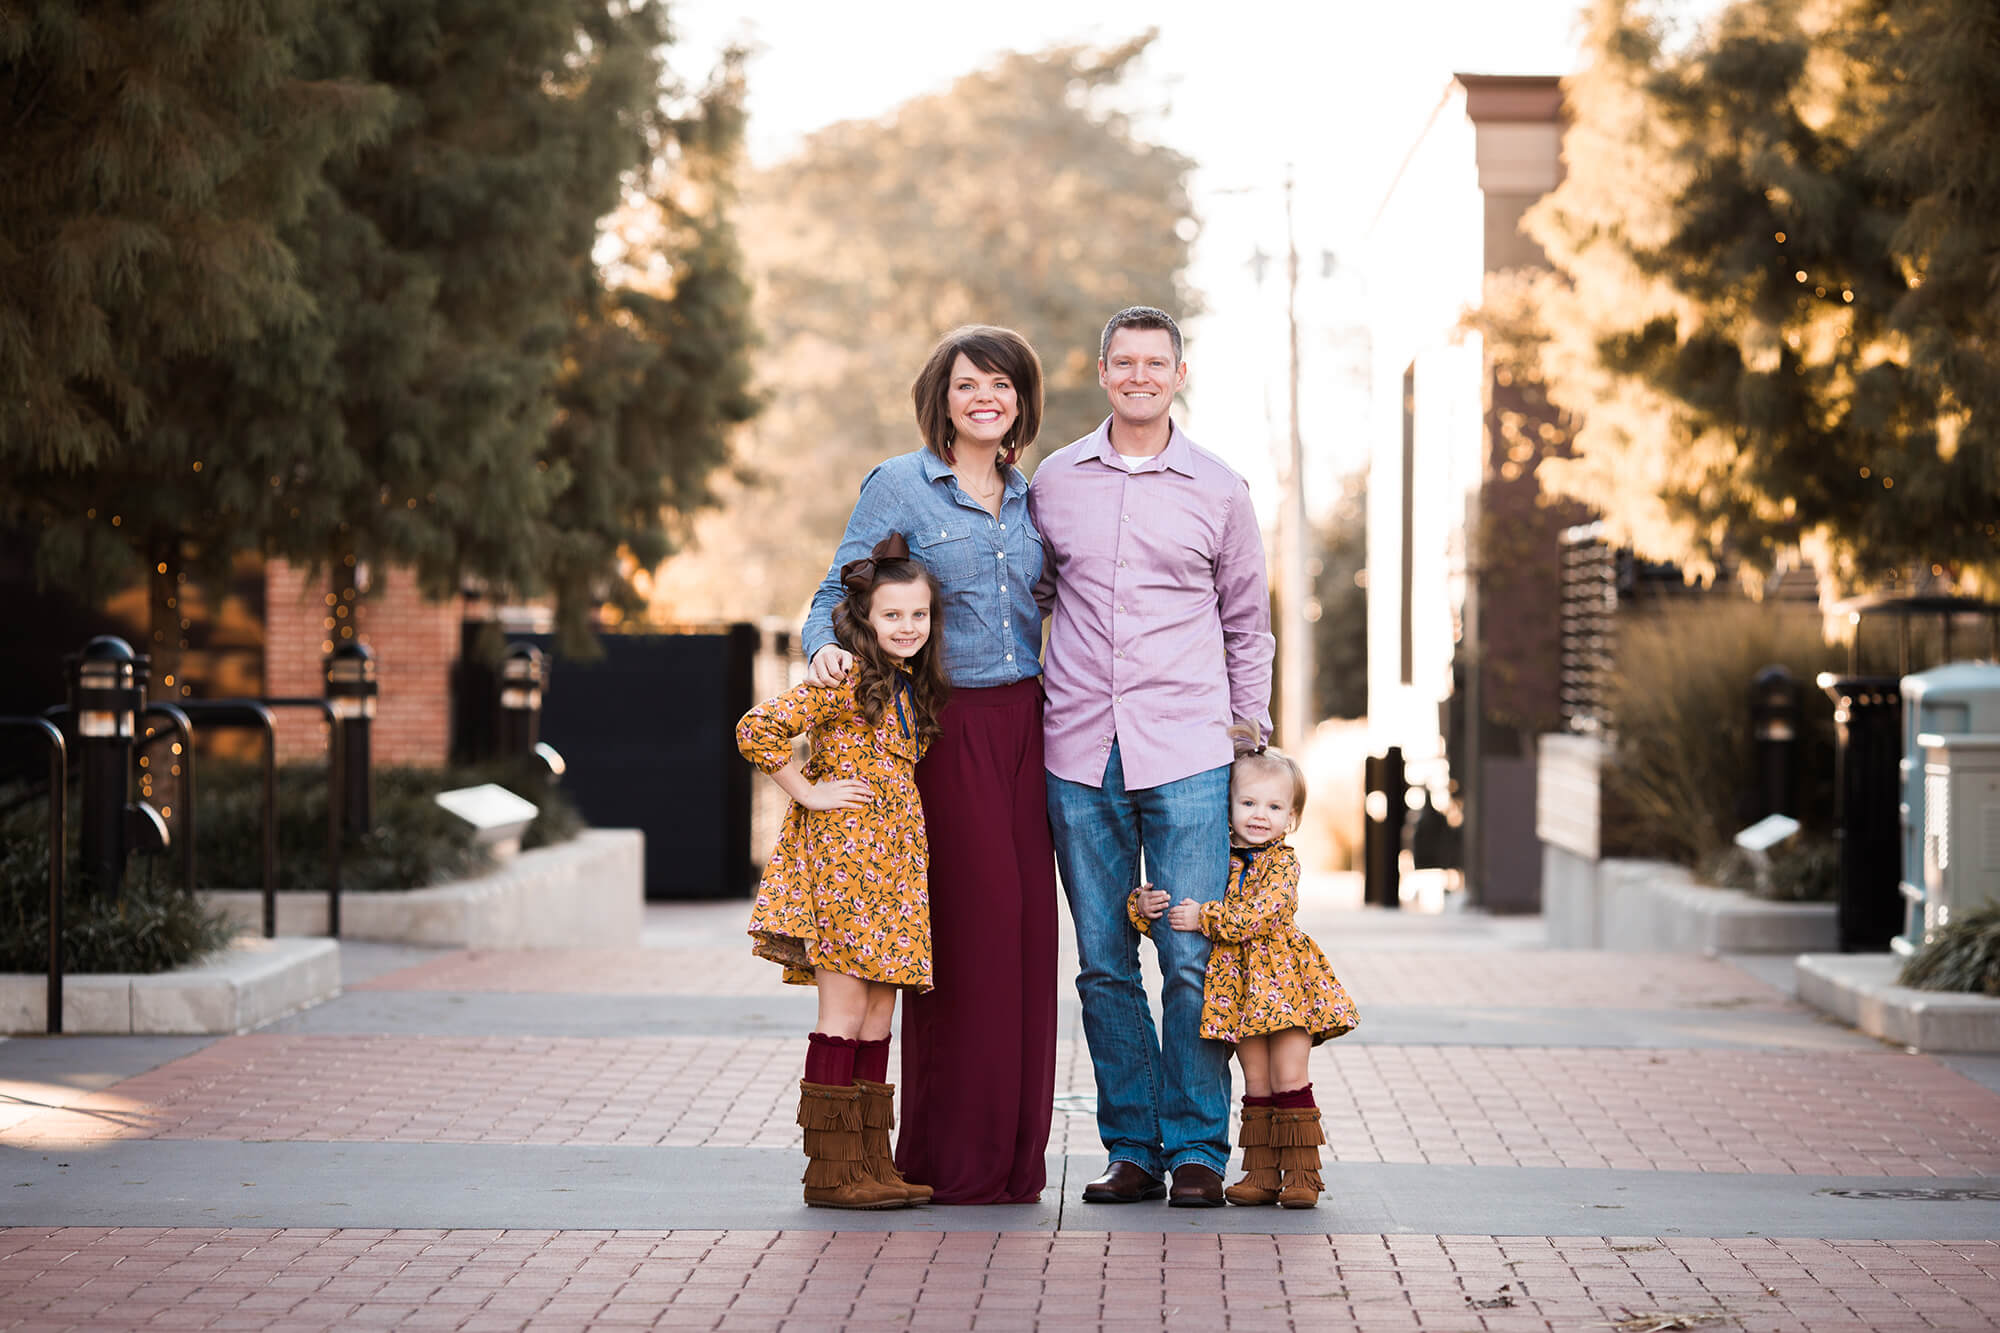 Sweet Snaps Photography - Chesterton Indiana Family Photographer